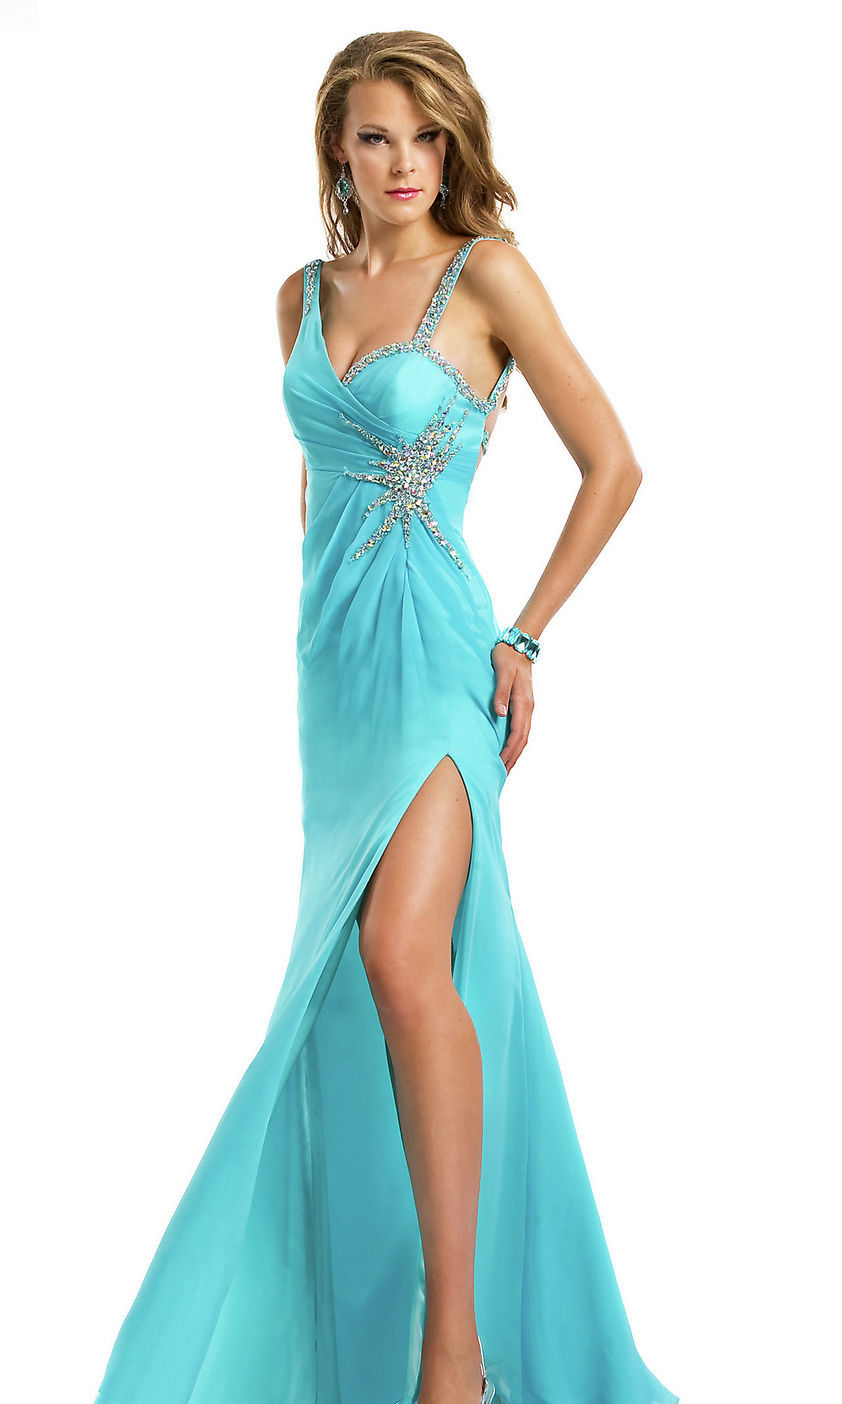 Old Fashioned Asian Style Prom Dresses Image - All Wedding Dresses ...